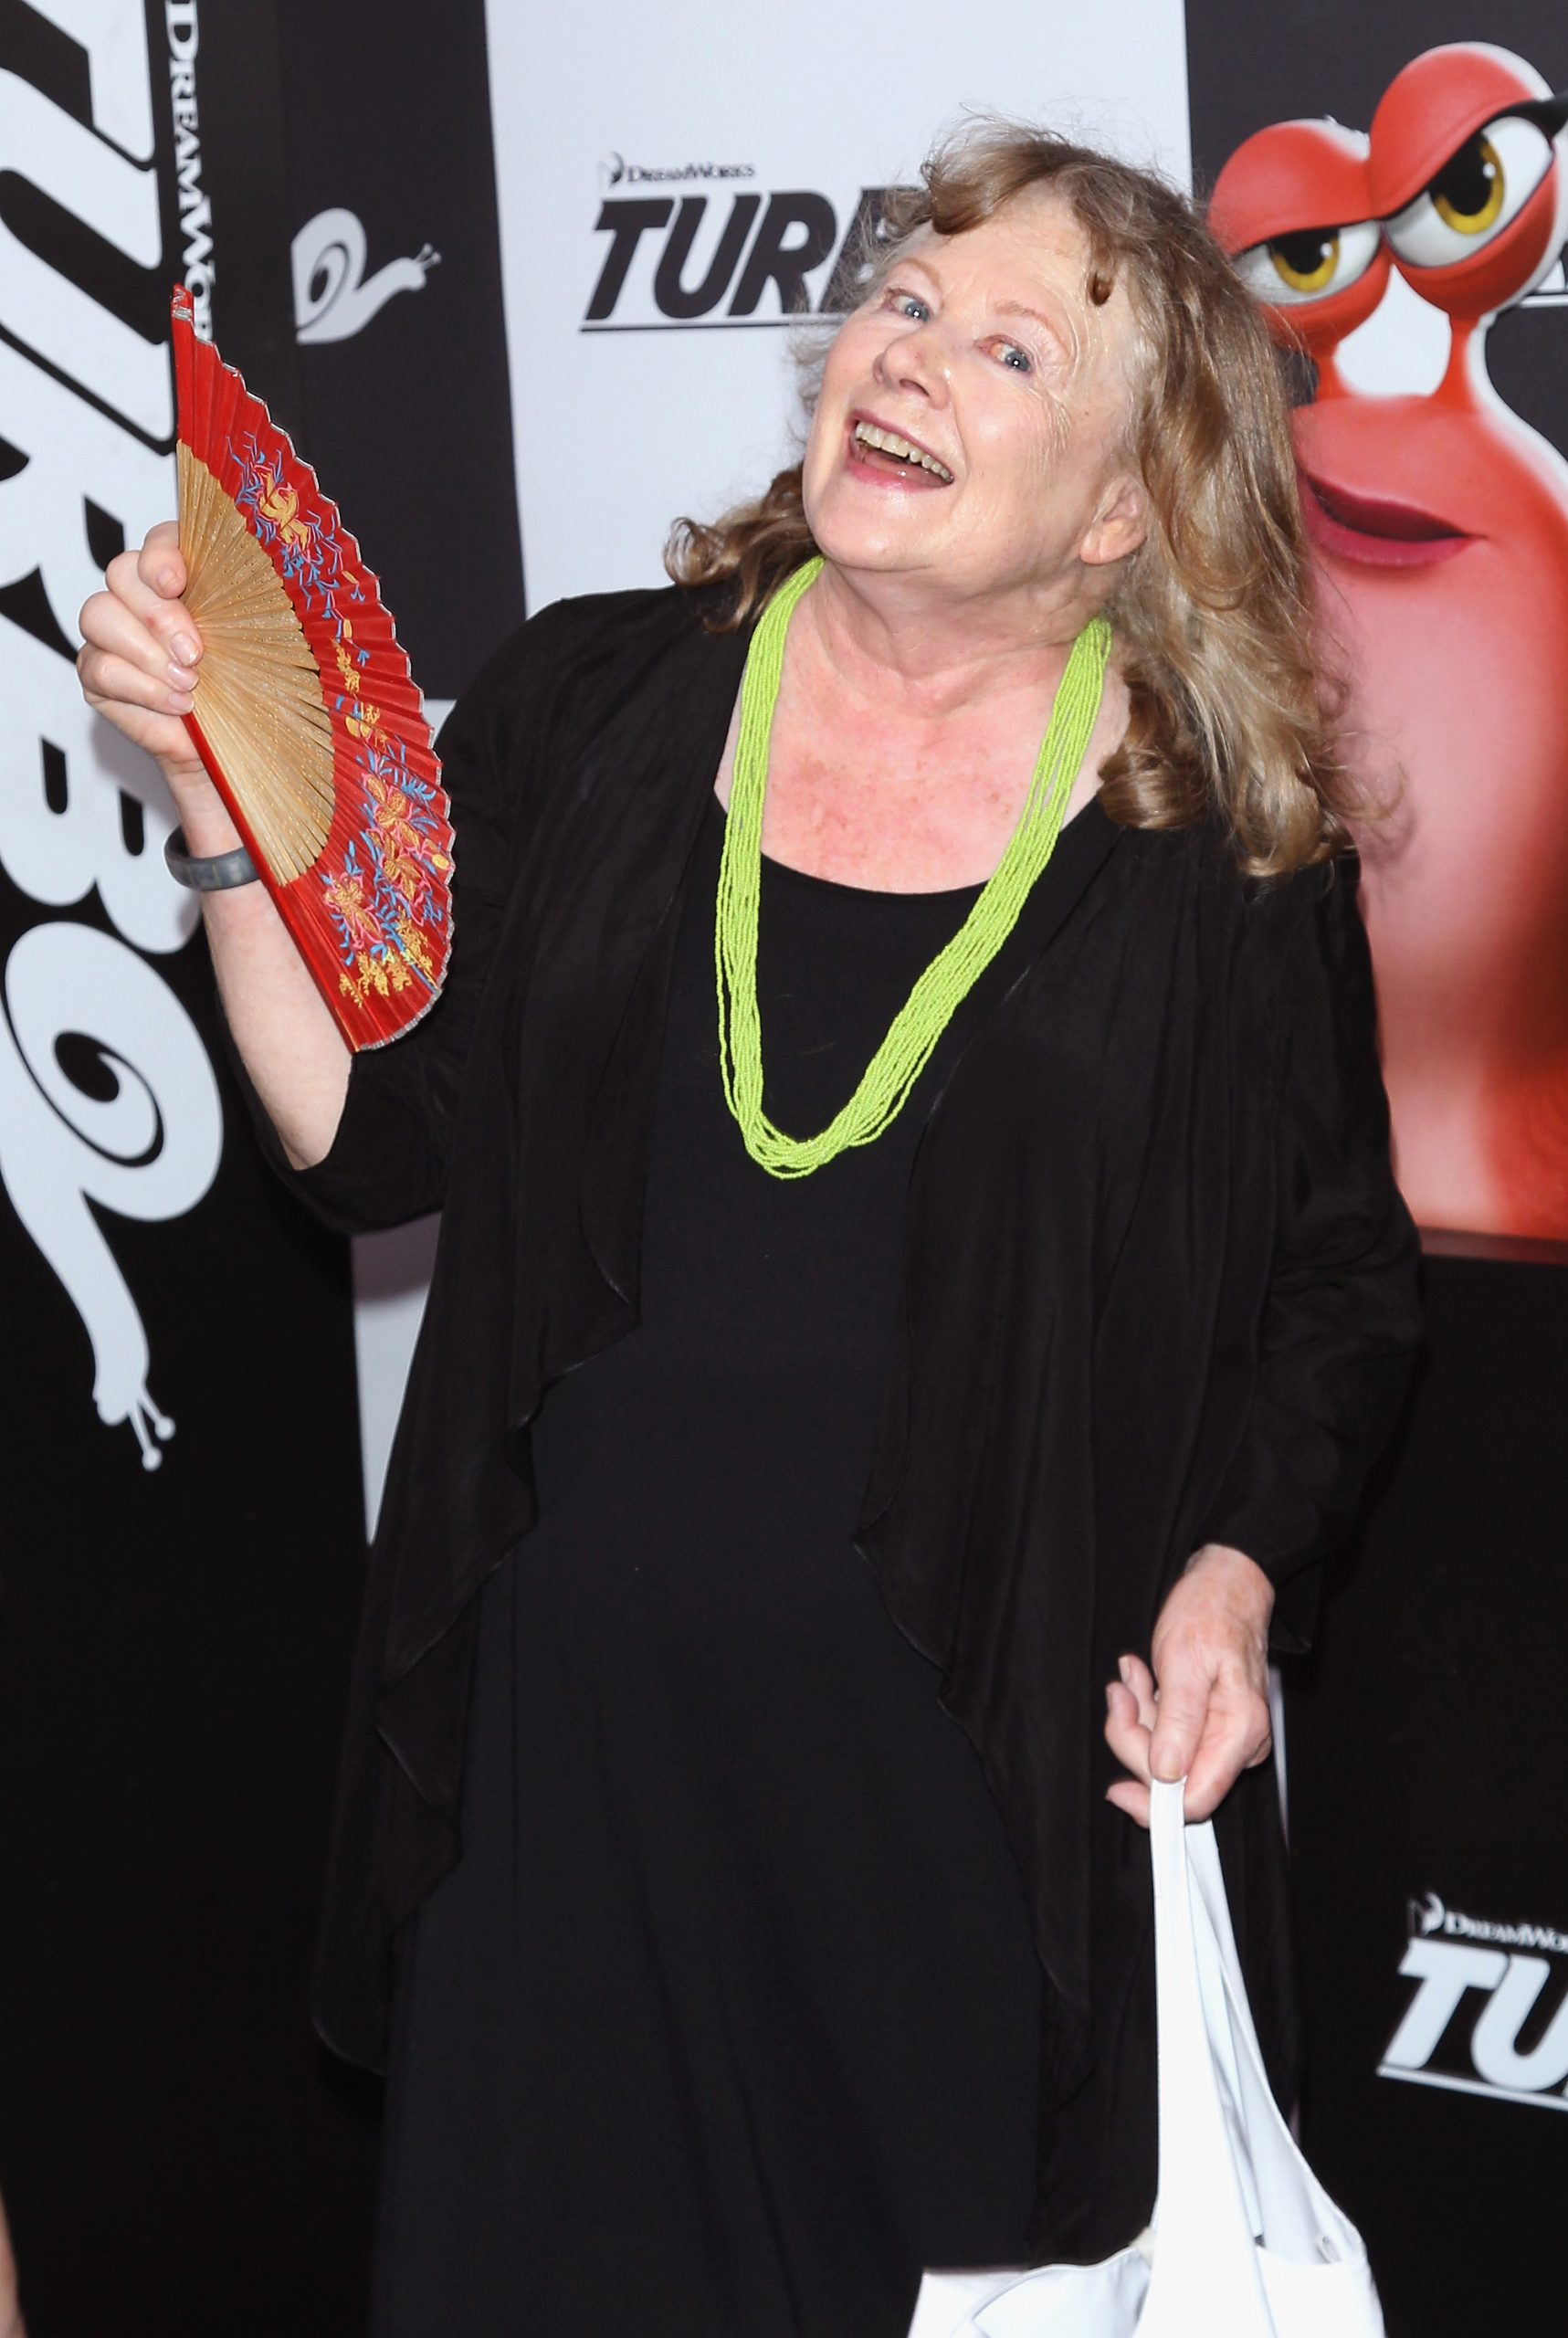 shirley knight at a movie premiere